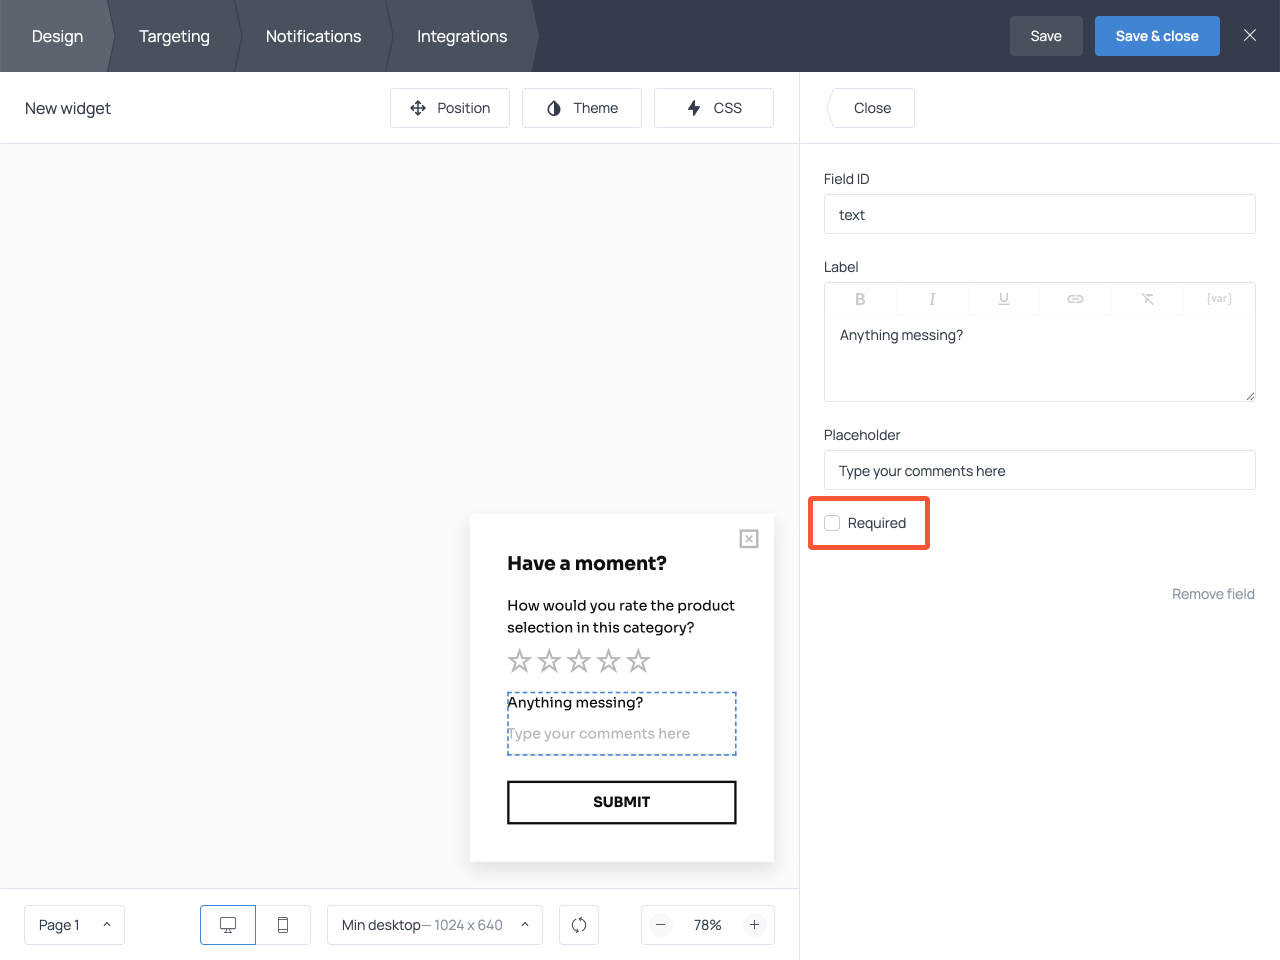 How to add a text field to a star rating scale survey